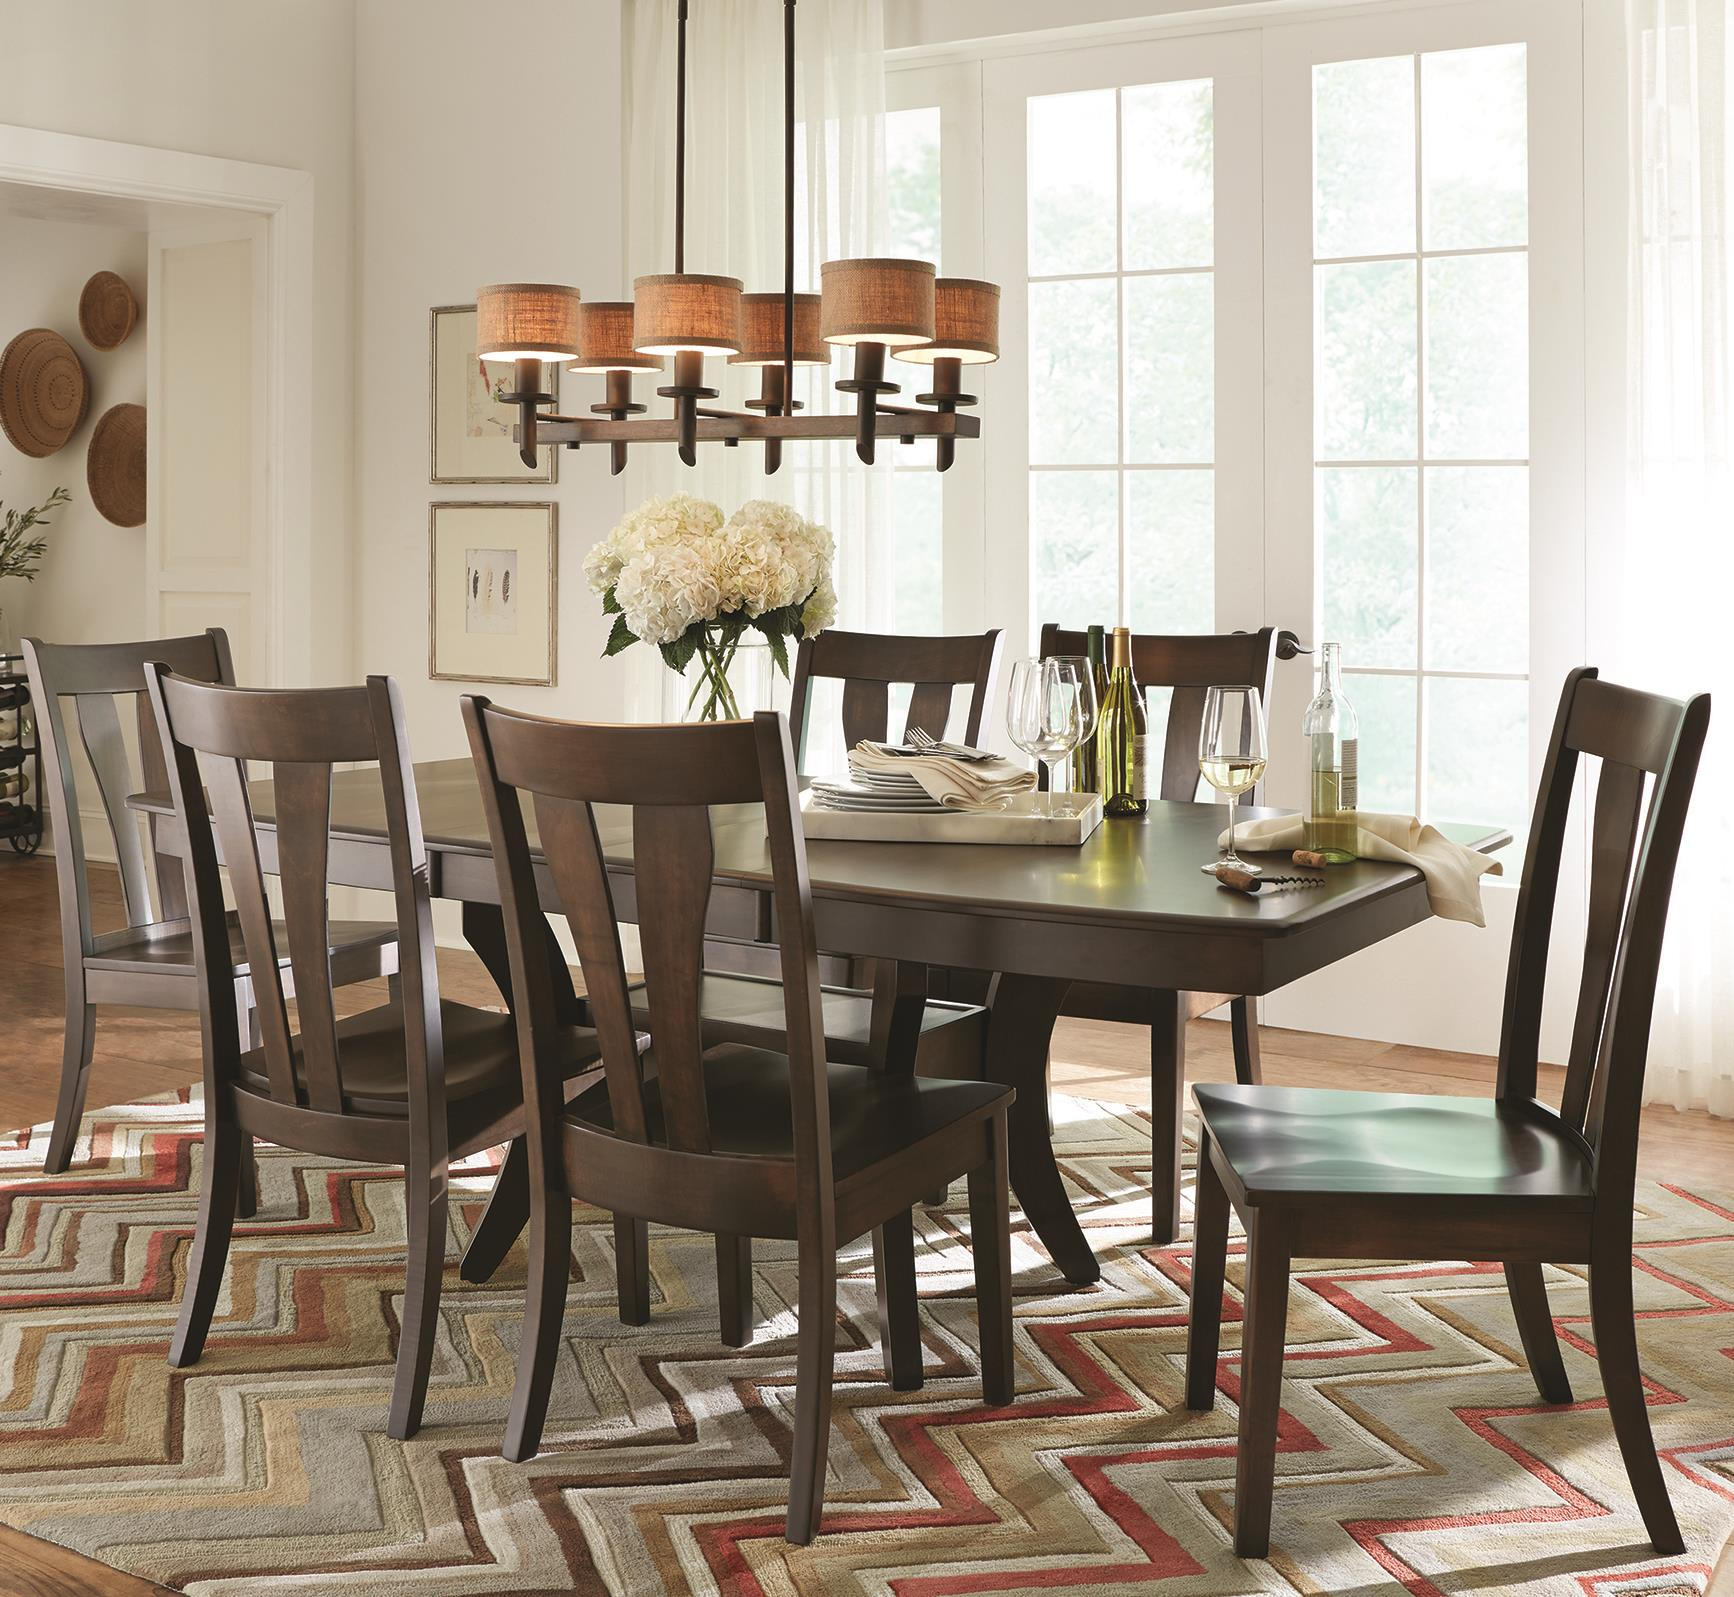 Covina 5 Piece Table & Chair Set at Morris Home